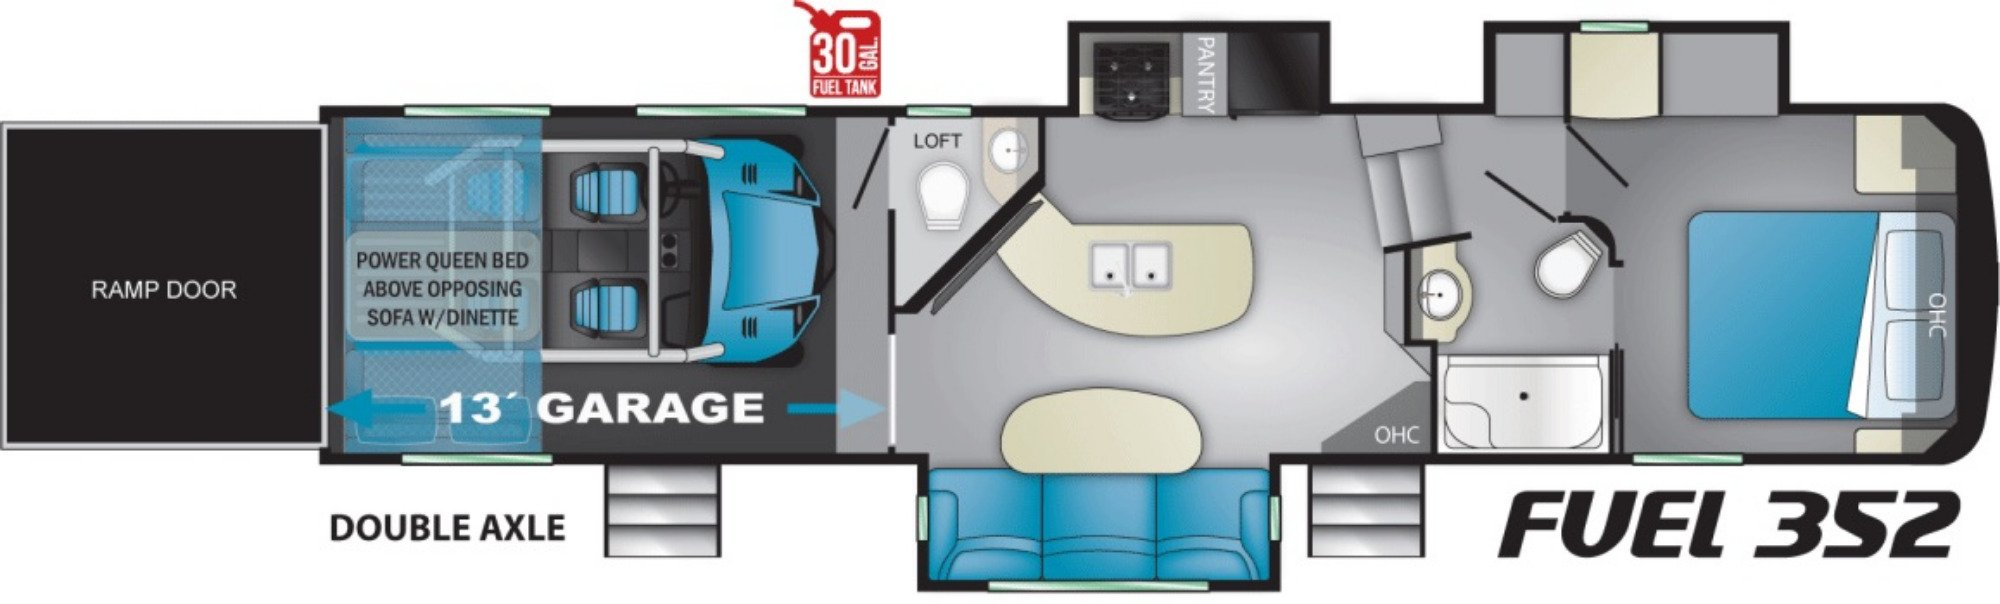 Floor Plan image for '2021 HEARTLAND FUEL 352'